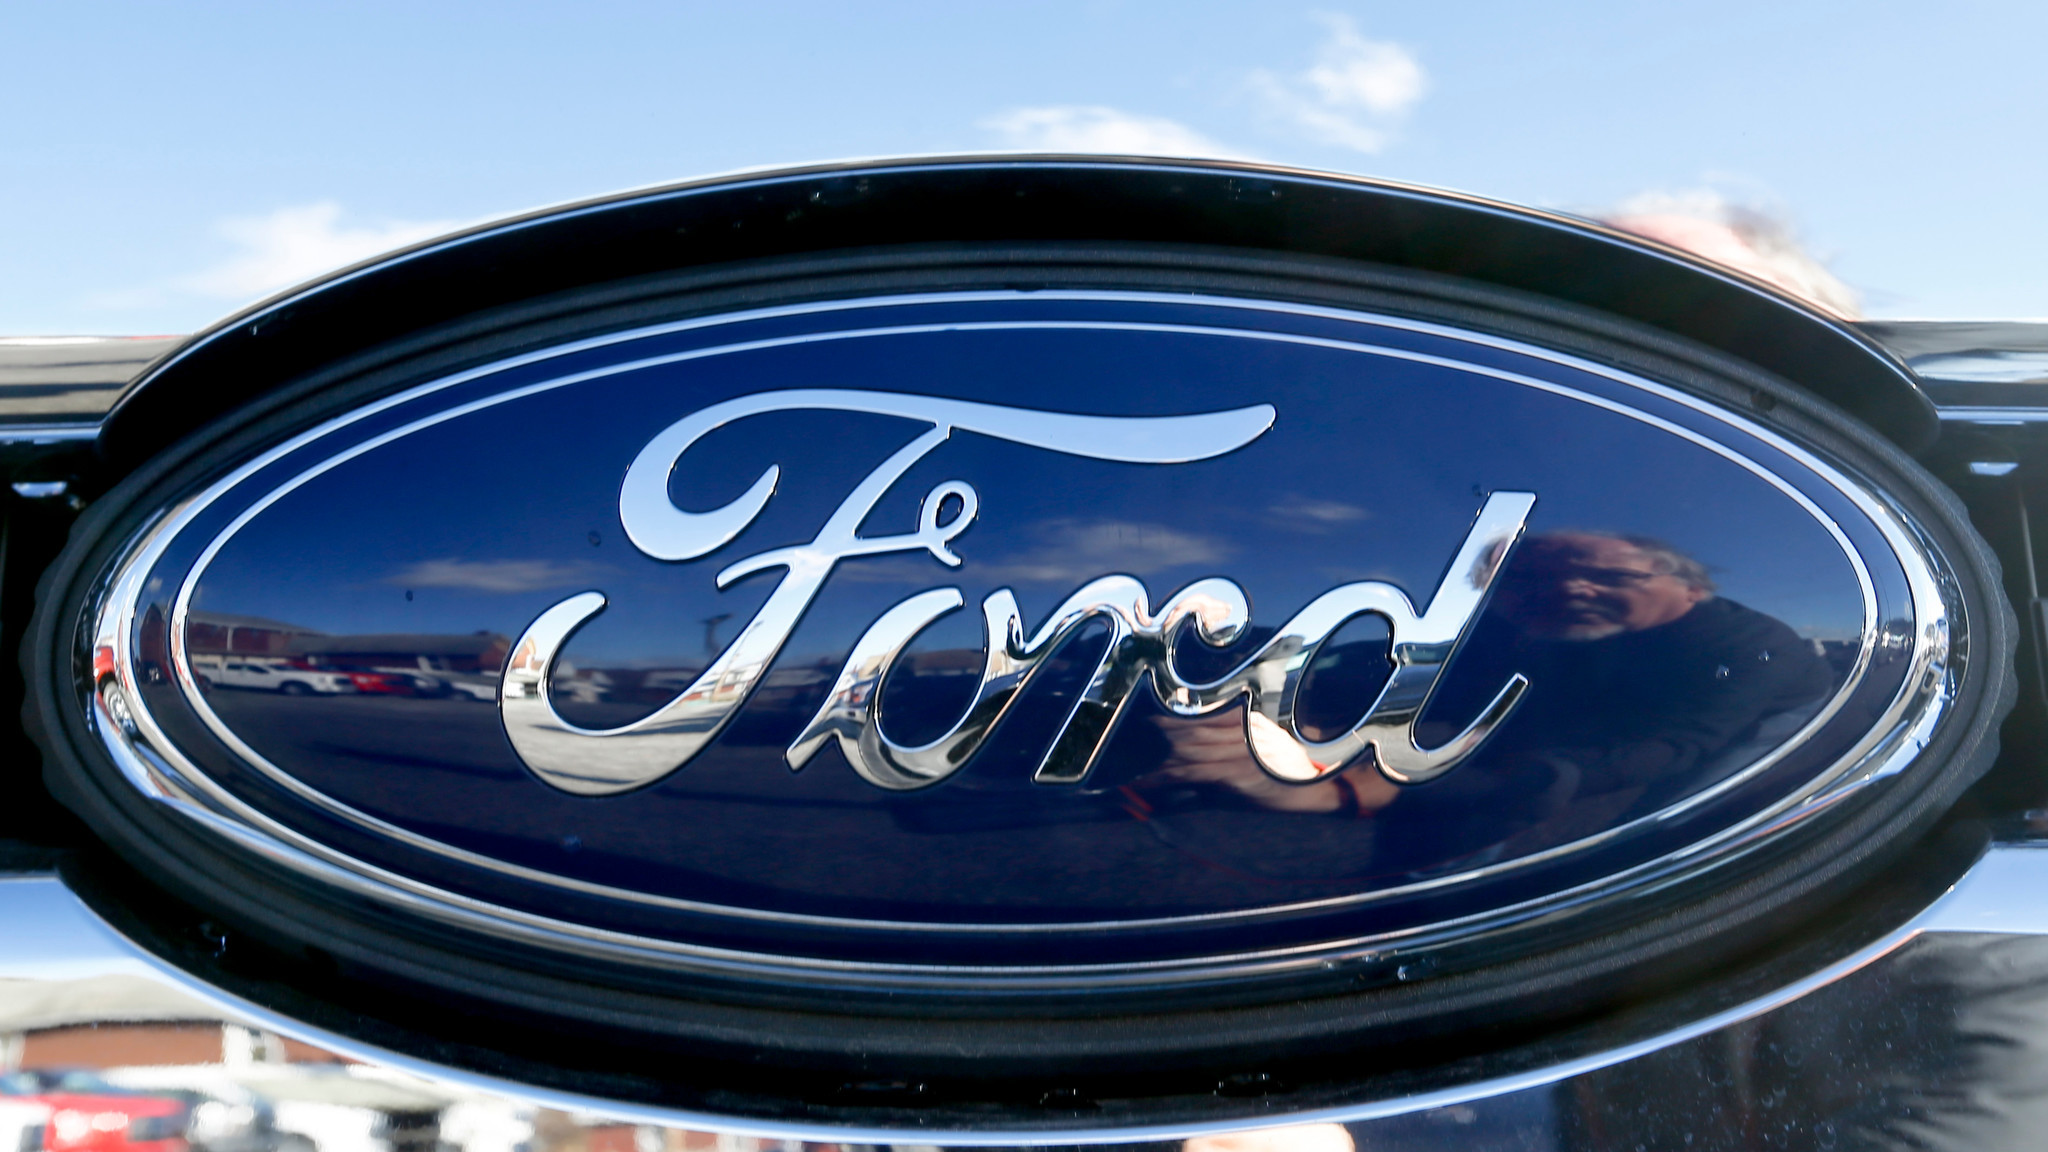 Ford says it will begin selling fully autonomous cars, with no steering wheels or pedals, by 2021, focused at first on ridehailing and ridesharing applications.